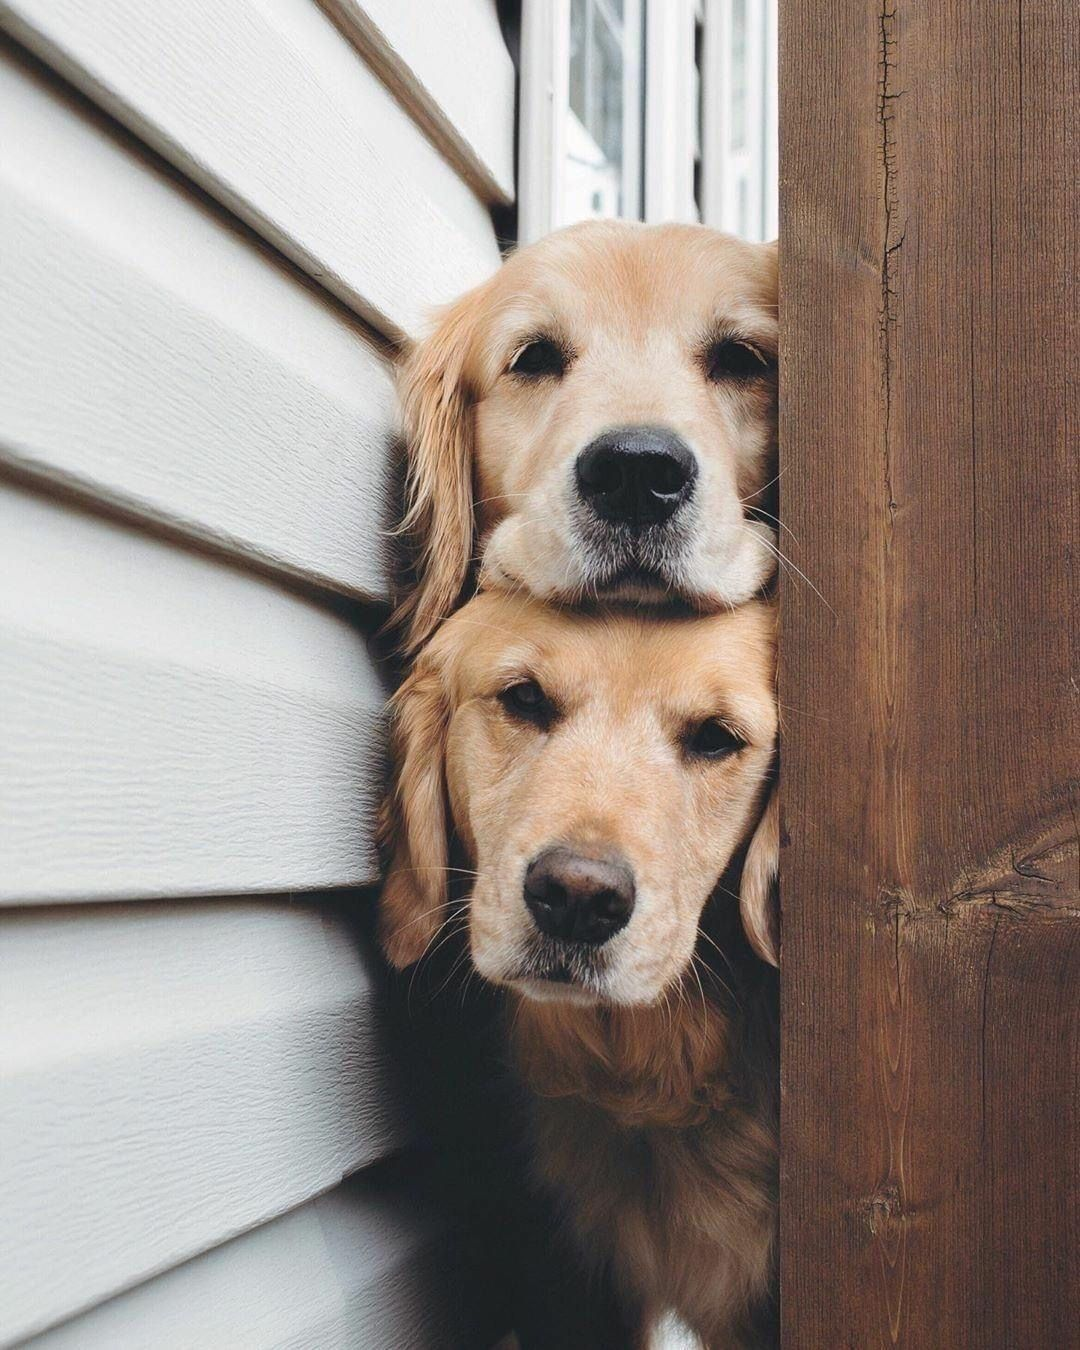 Pin By Leslie Batenhorst On Golden Retrievers In 2020 Dogs Cute Dogs Doggy